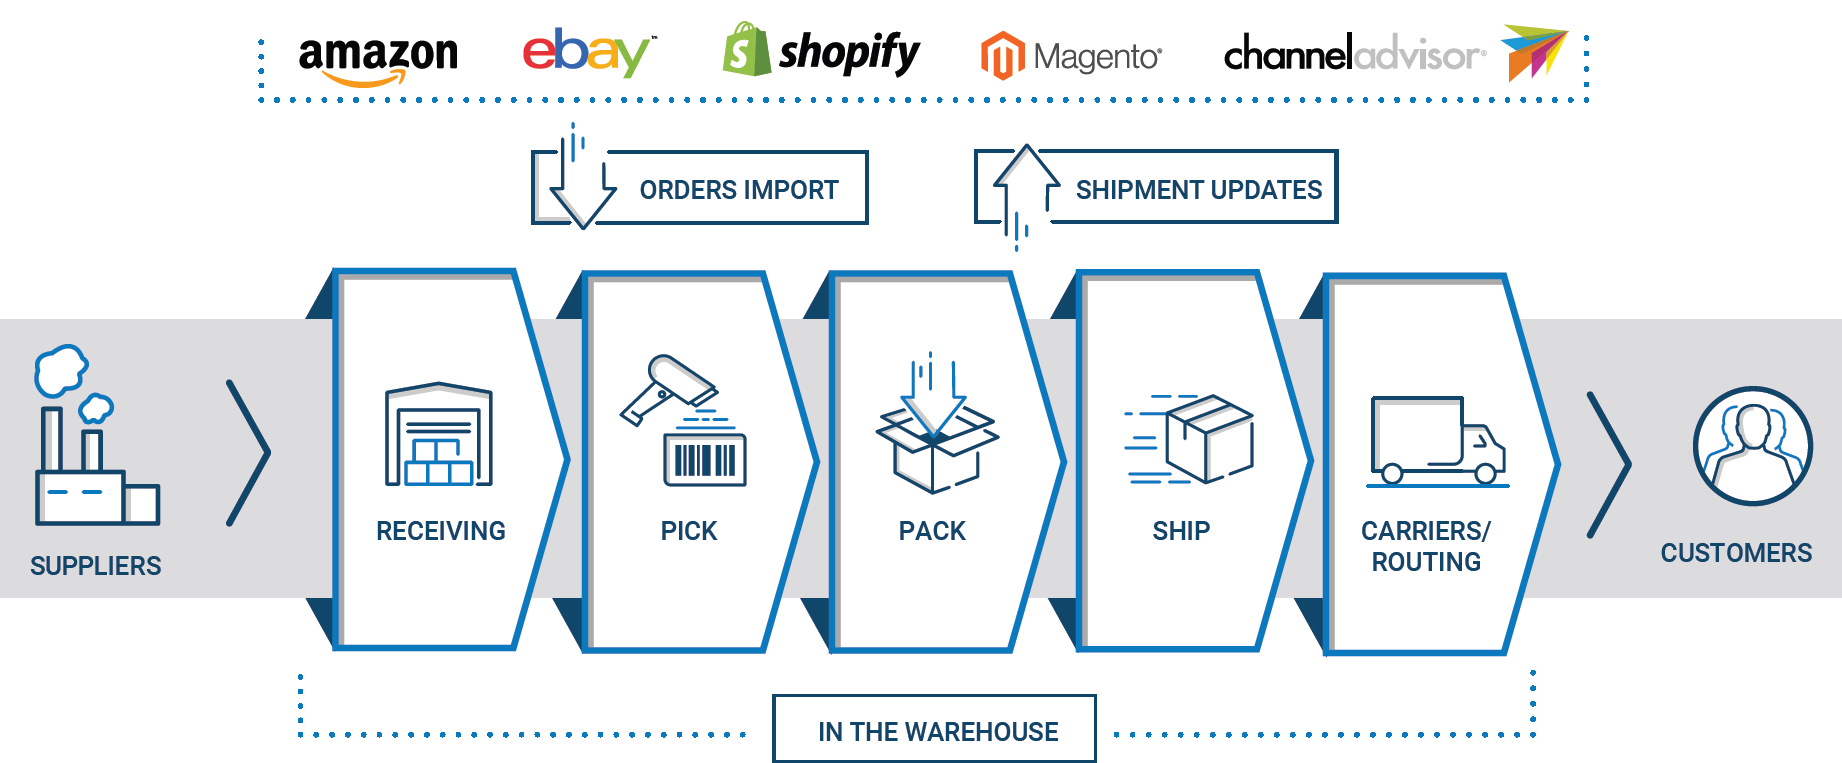 Descartes ecommerce warehouse management system software optimizes receiving, picking, packing, shipping, and routing